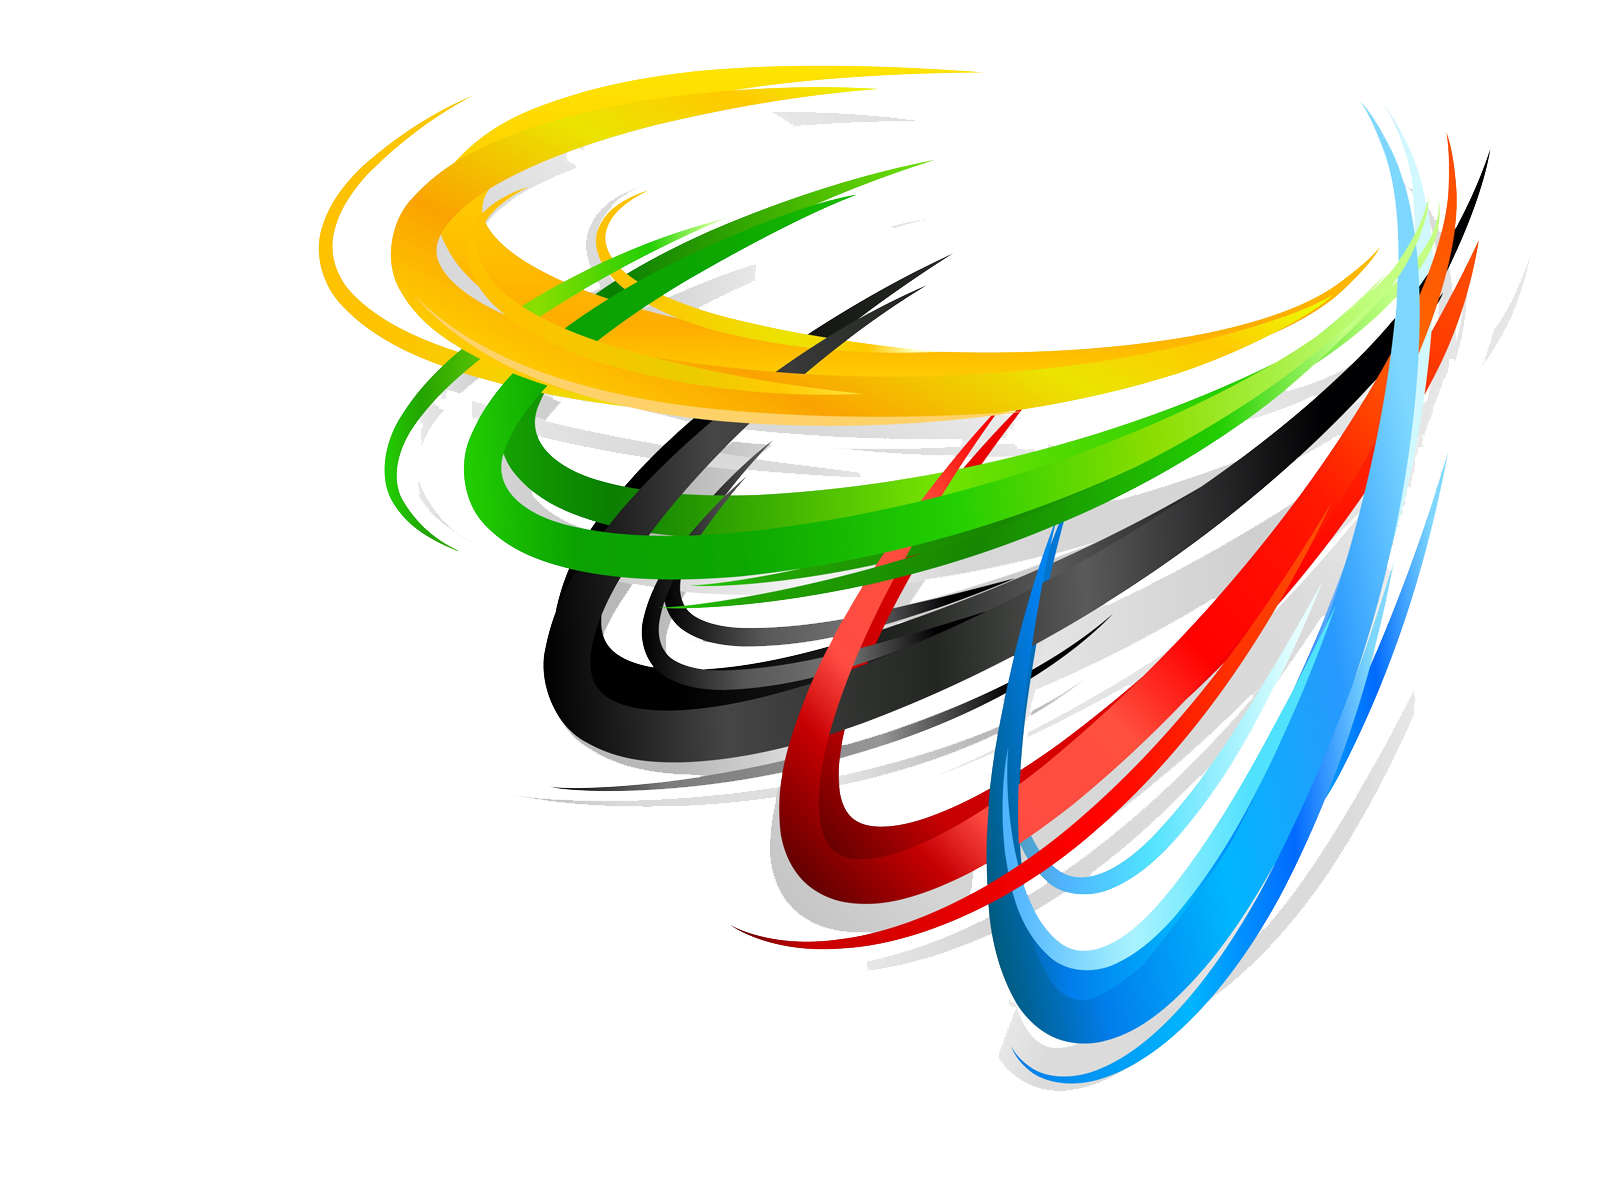 torch clipart olympics rio 2016